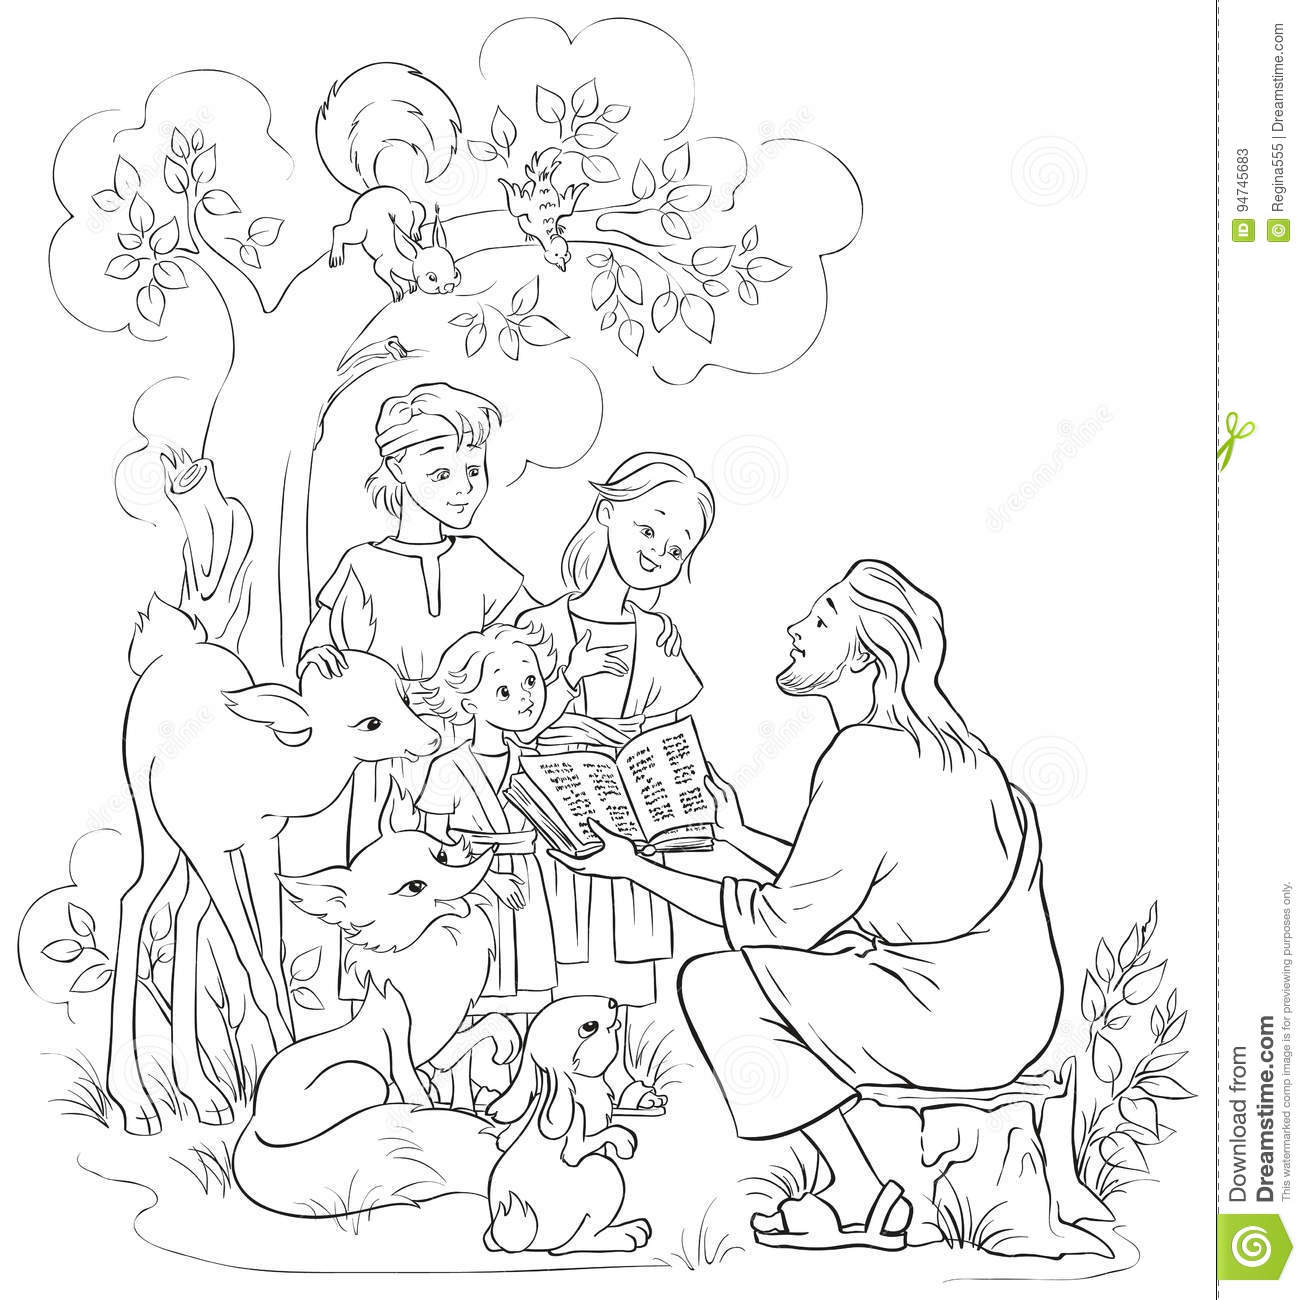 christian child coloring pages free - photo#12